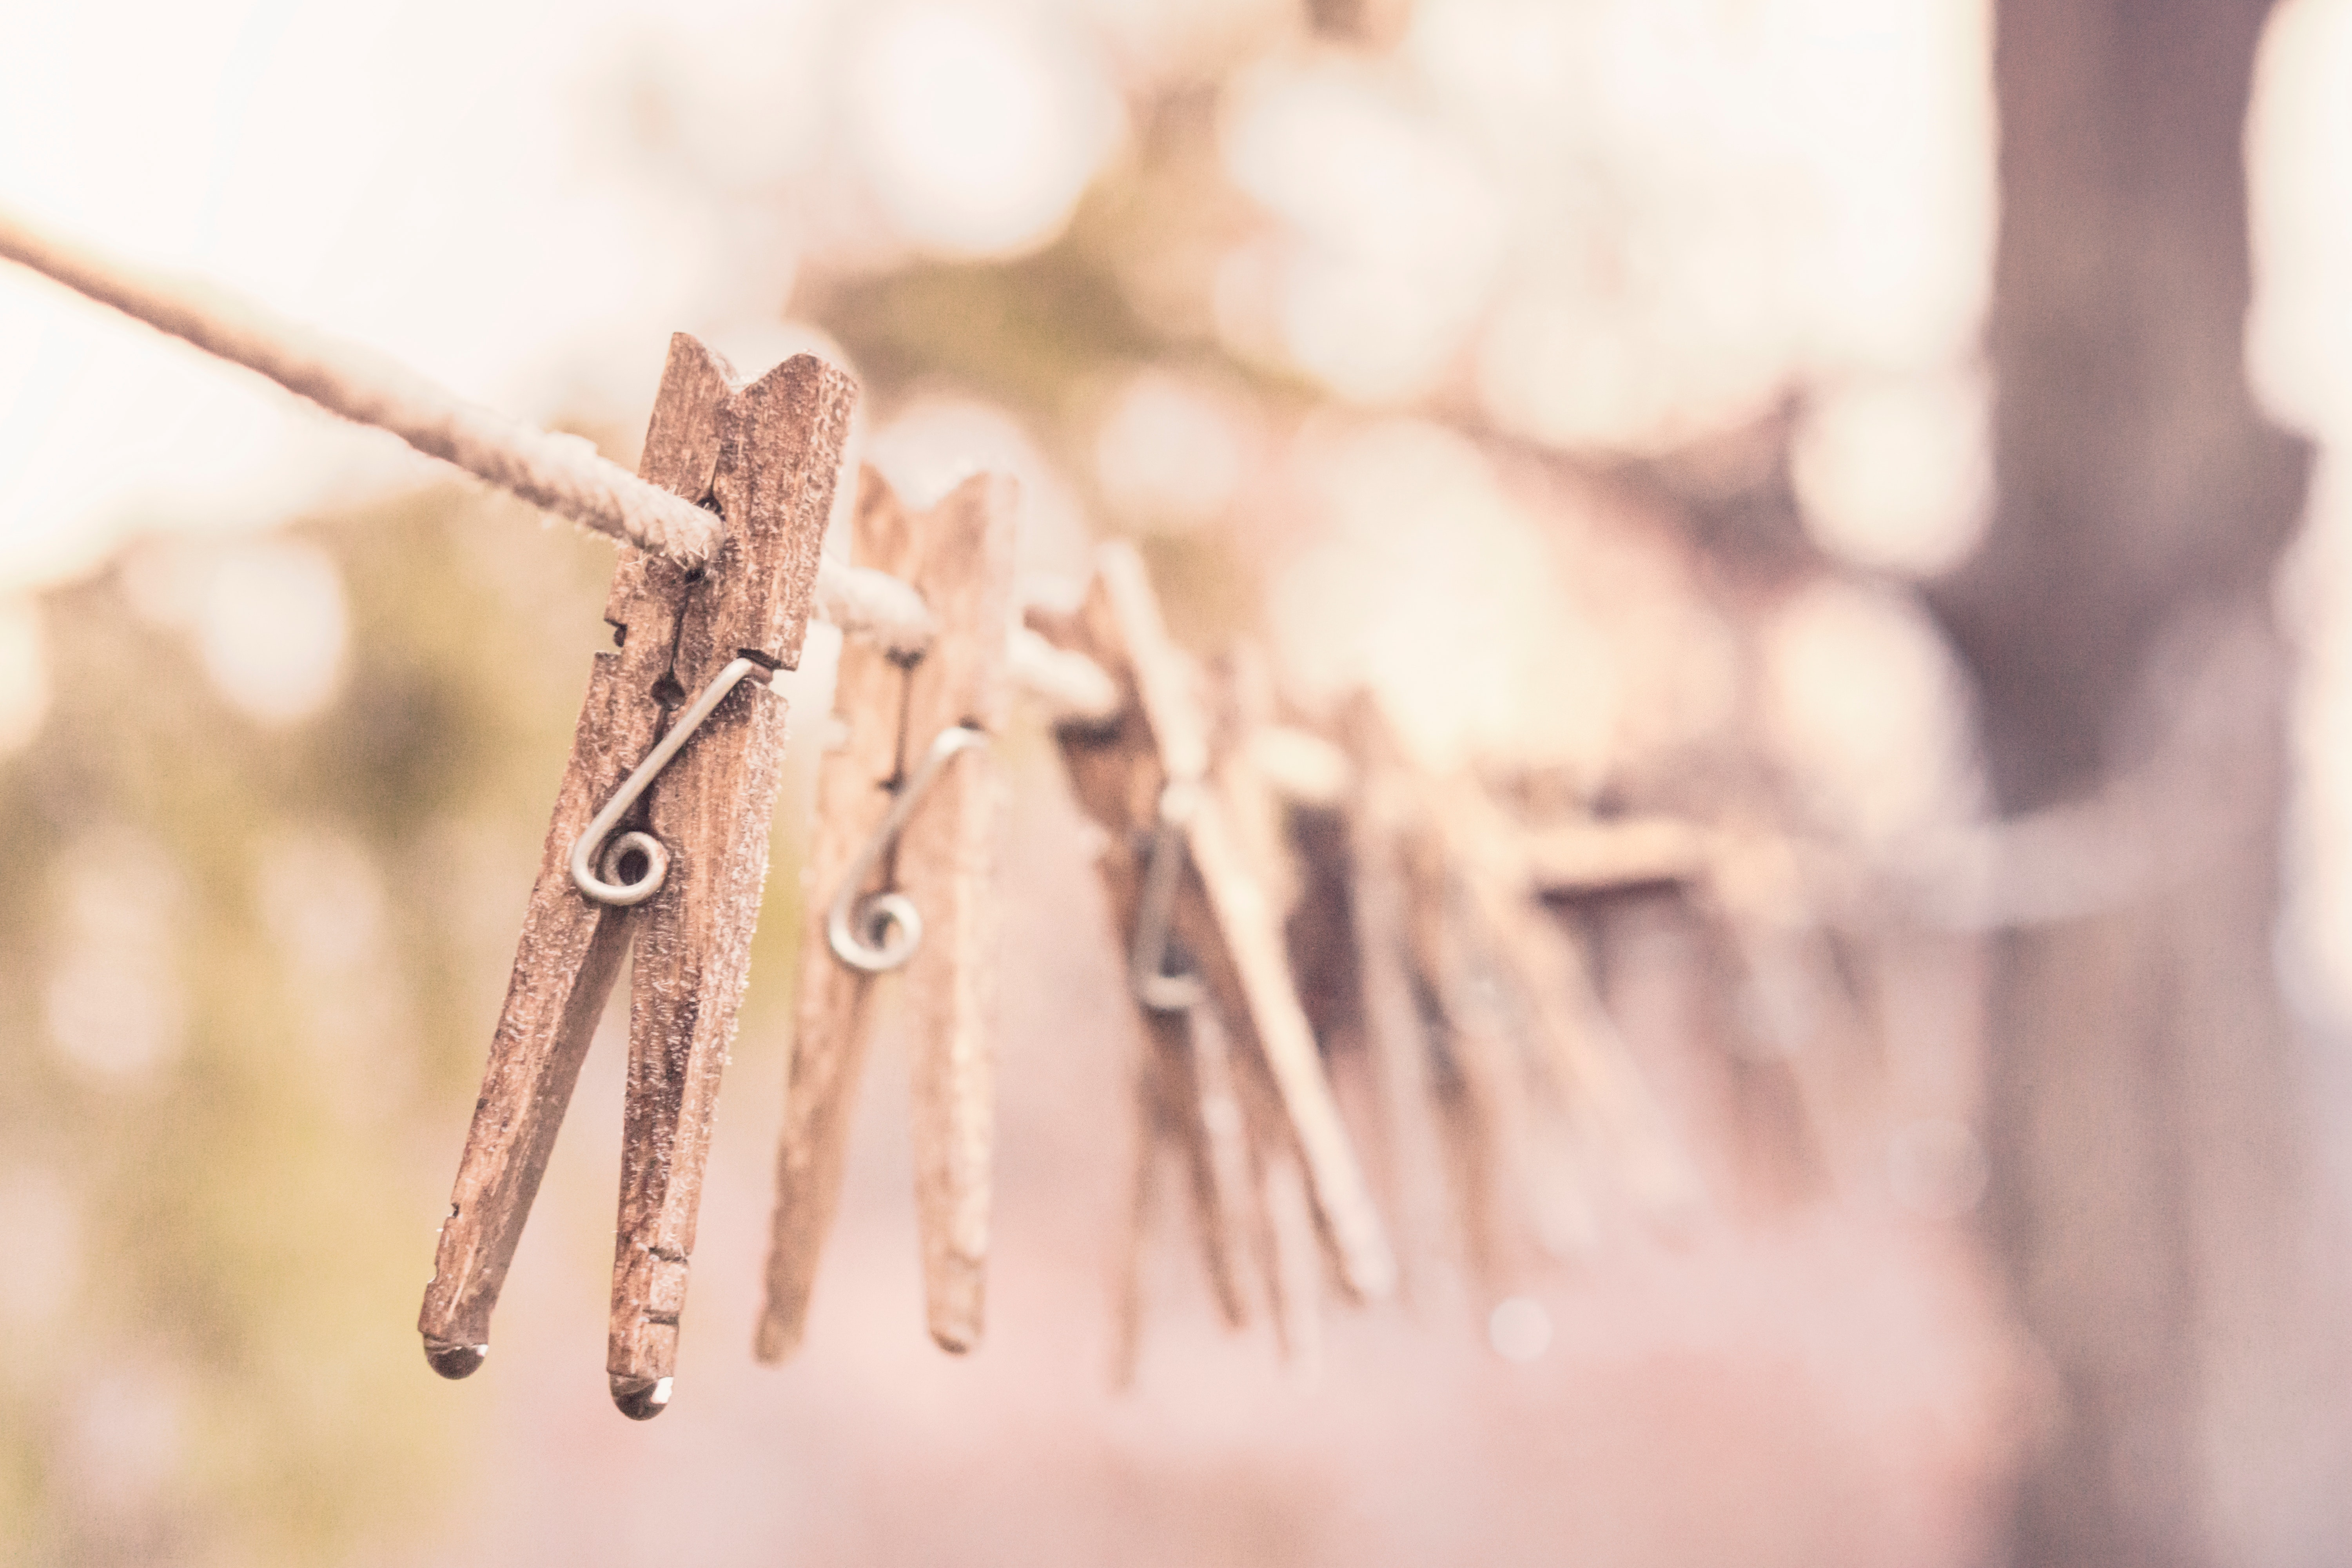 clothes-line-clothes-pegs-clothespins-36